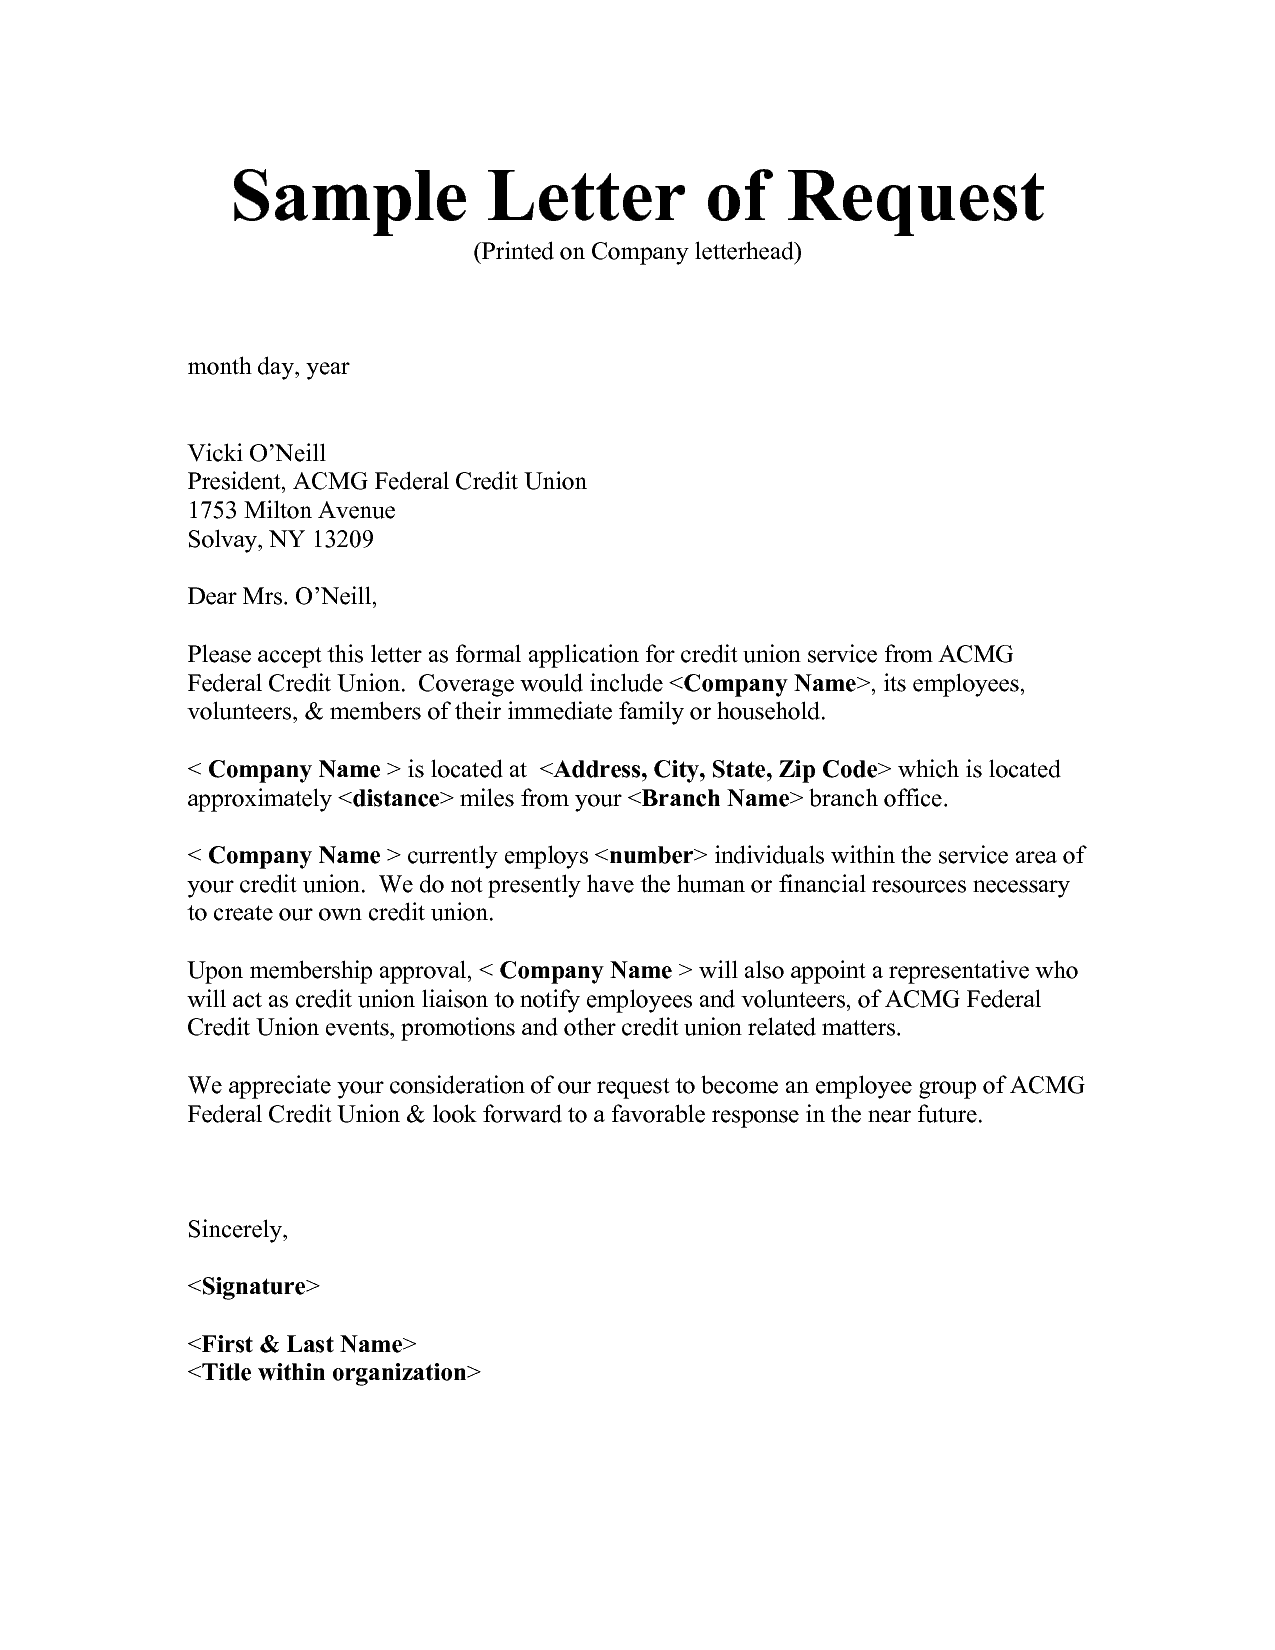 Business letter requesting information sample letters format business letter requesting information sample letters format request spiritdancerdesigns Image collections